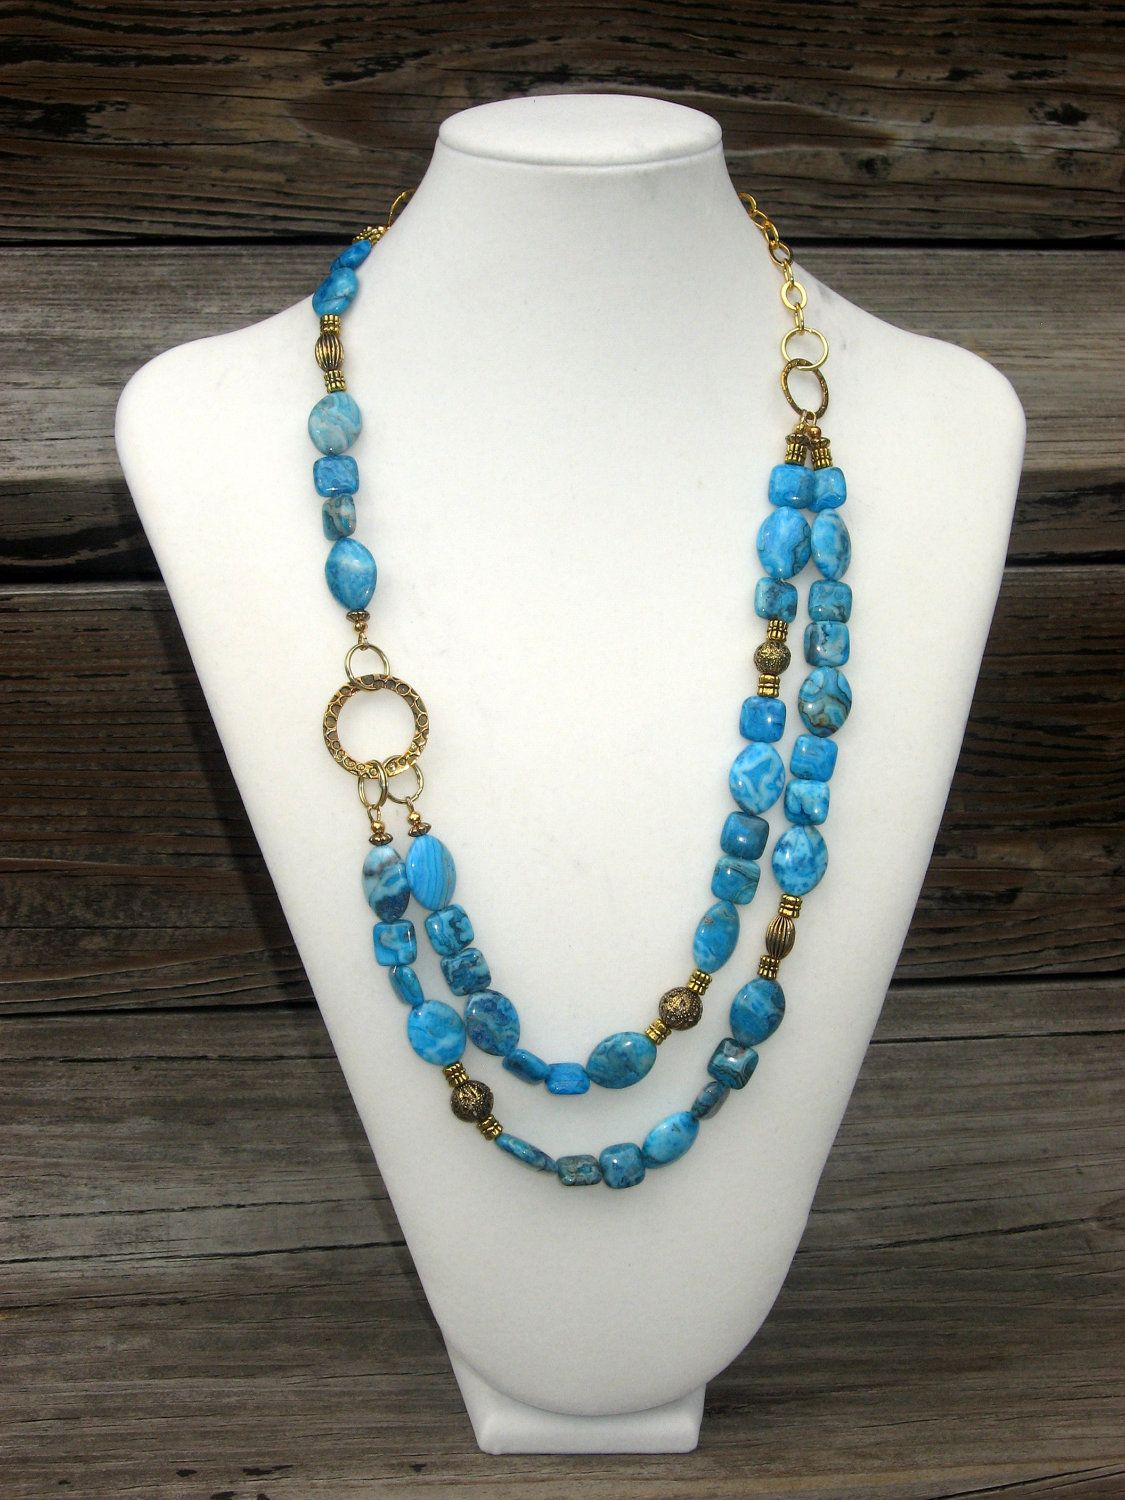 Turquoise Asymmetrical Crazy Lace Agate Necklace.